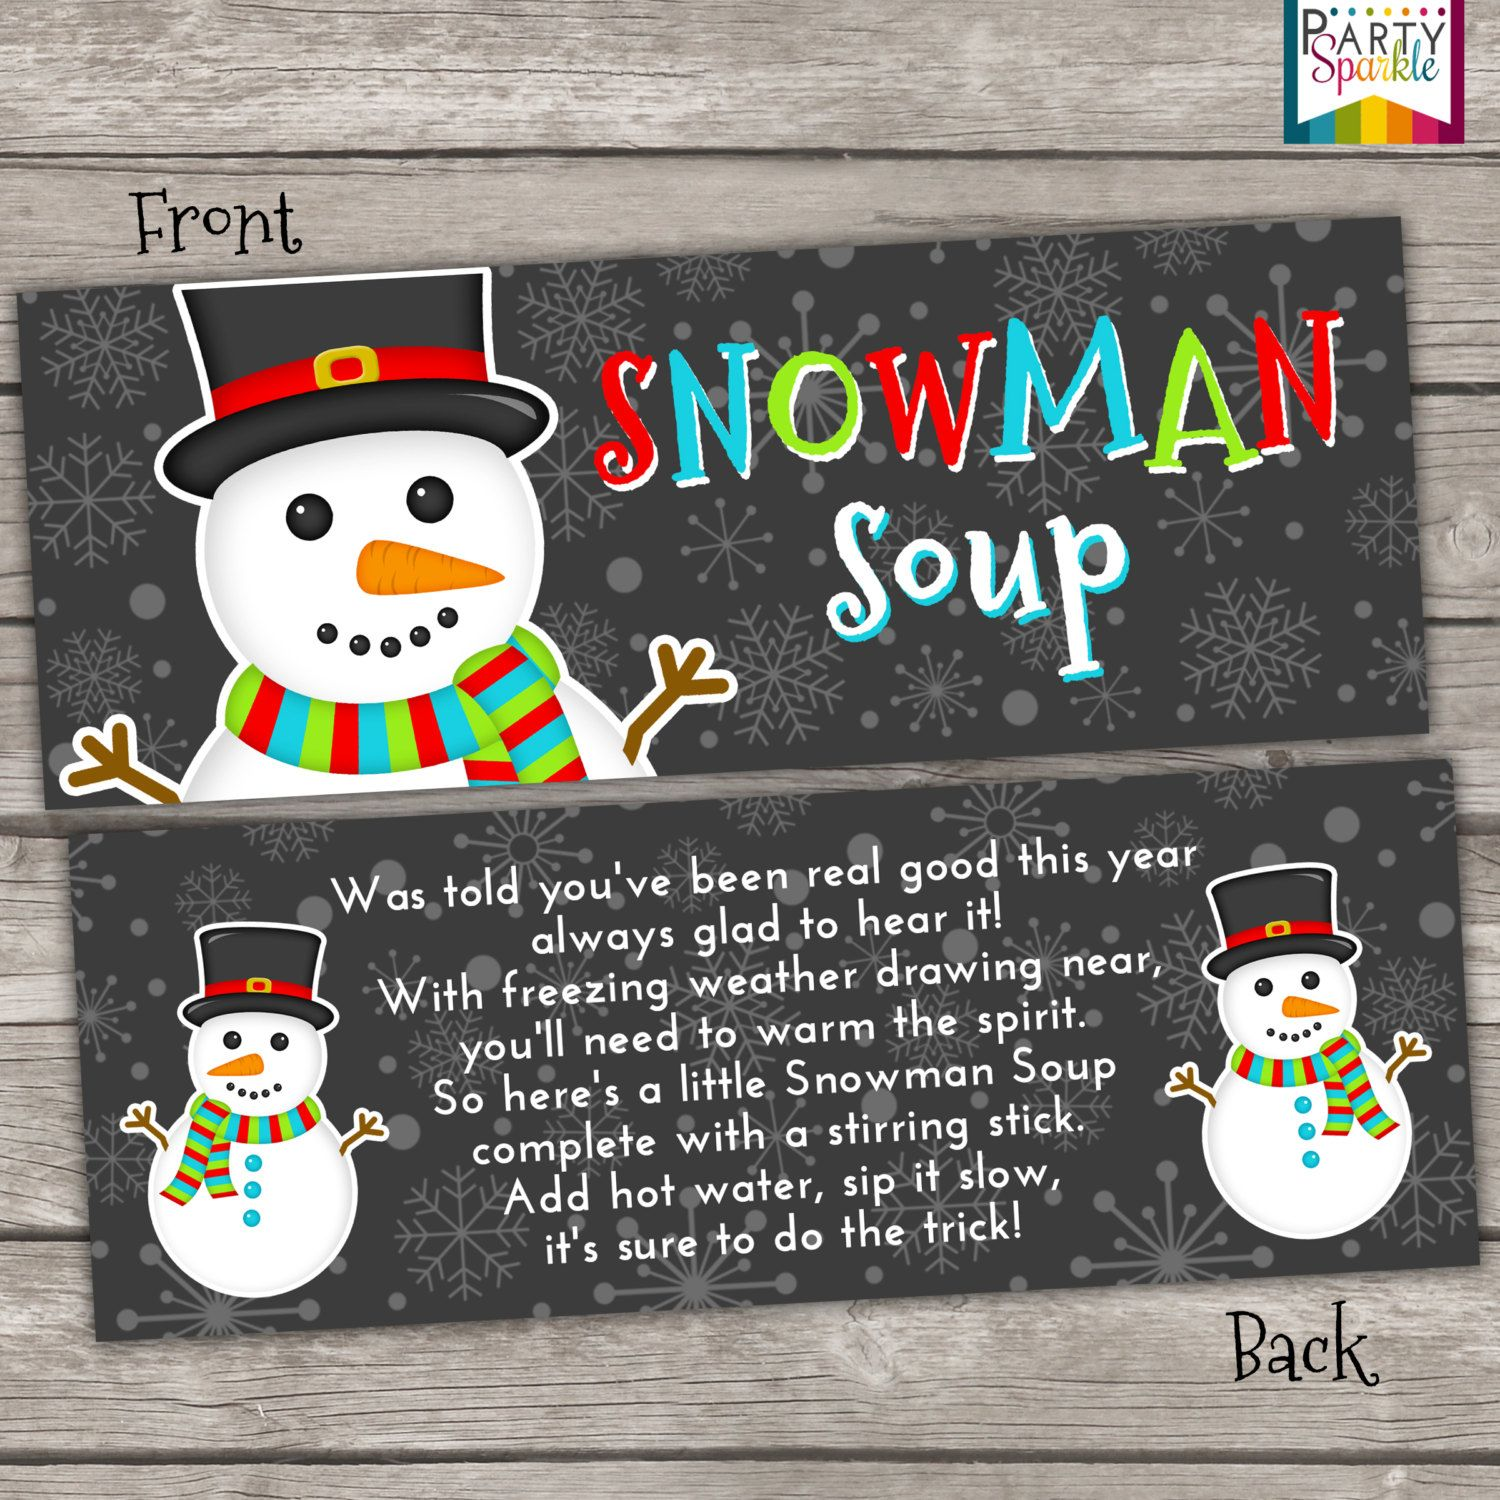 picture about Snowman Soup Free Printable Bag Toppers named Immediate Down load Snowman Soup Deal with Bag Toppers by means of